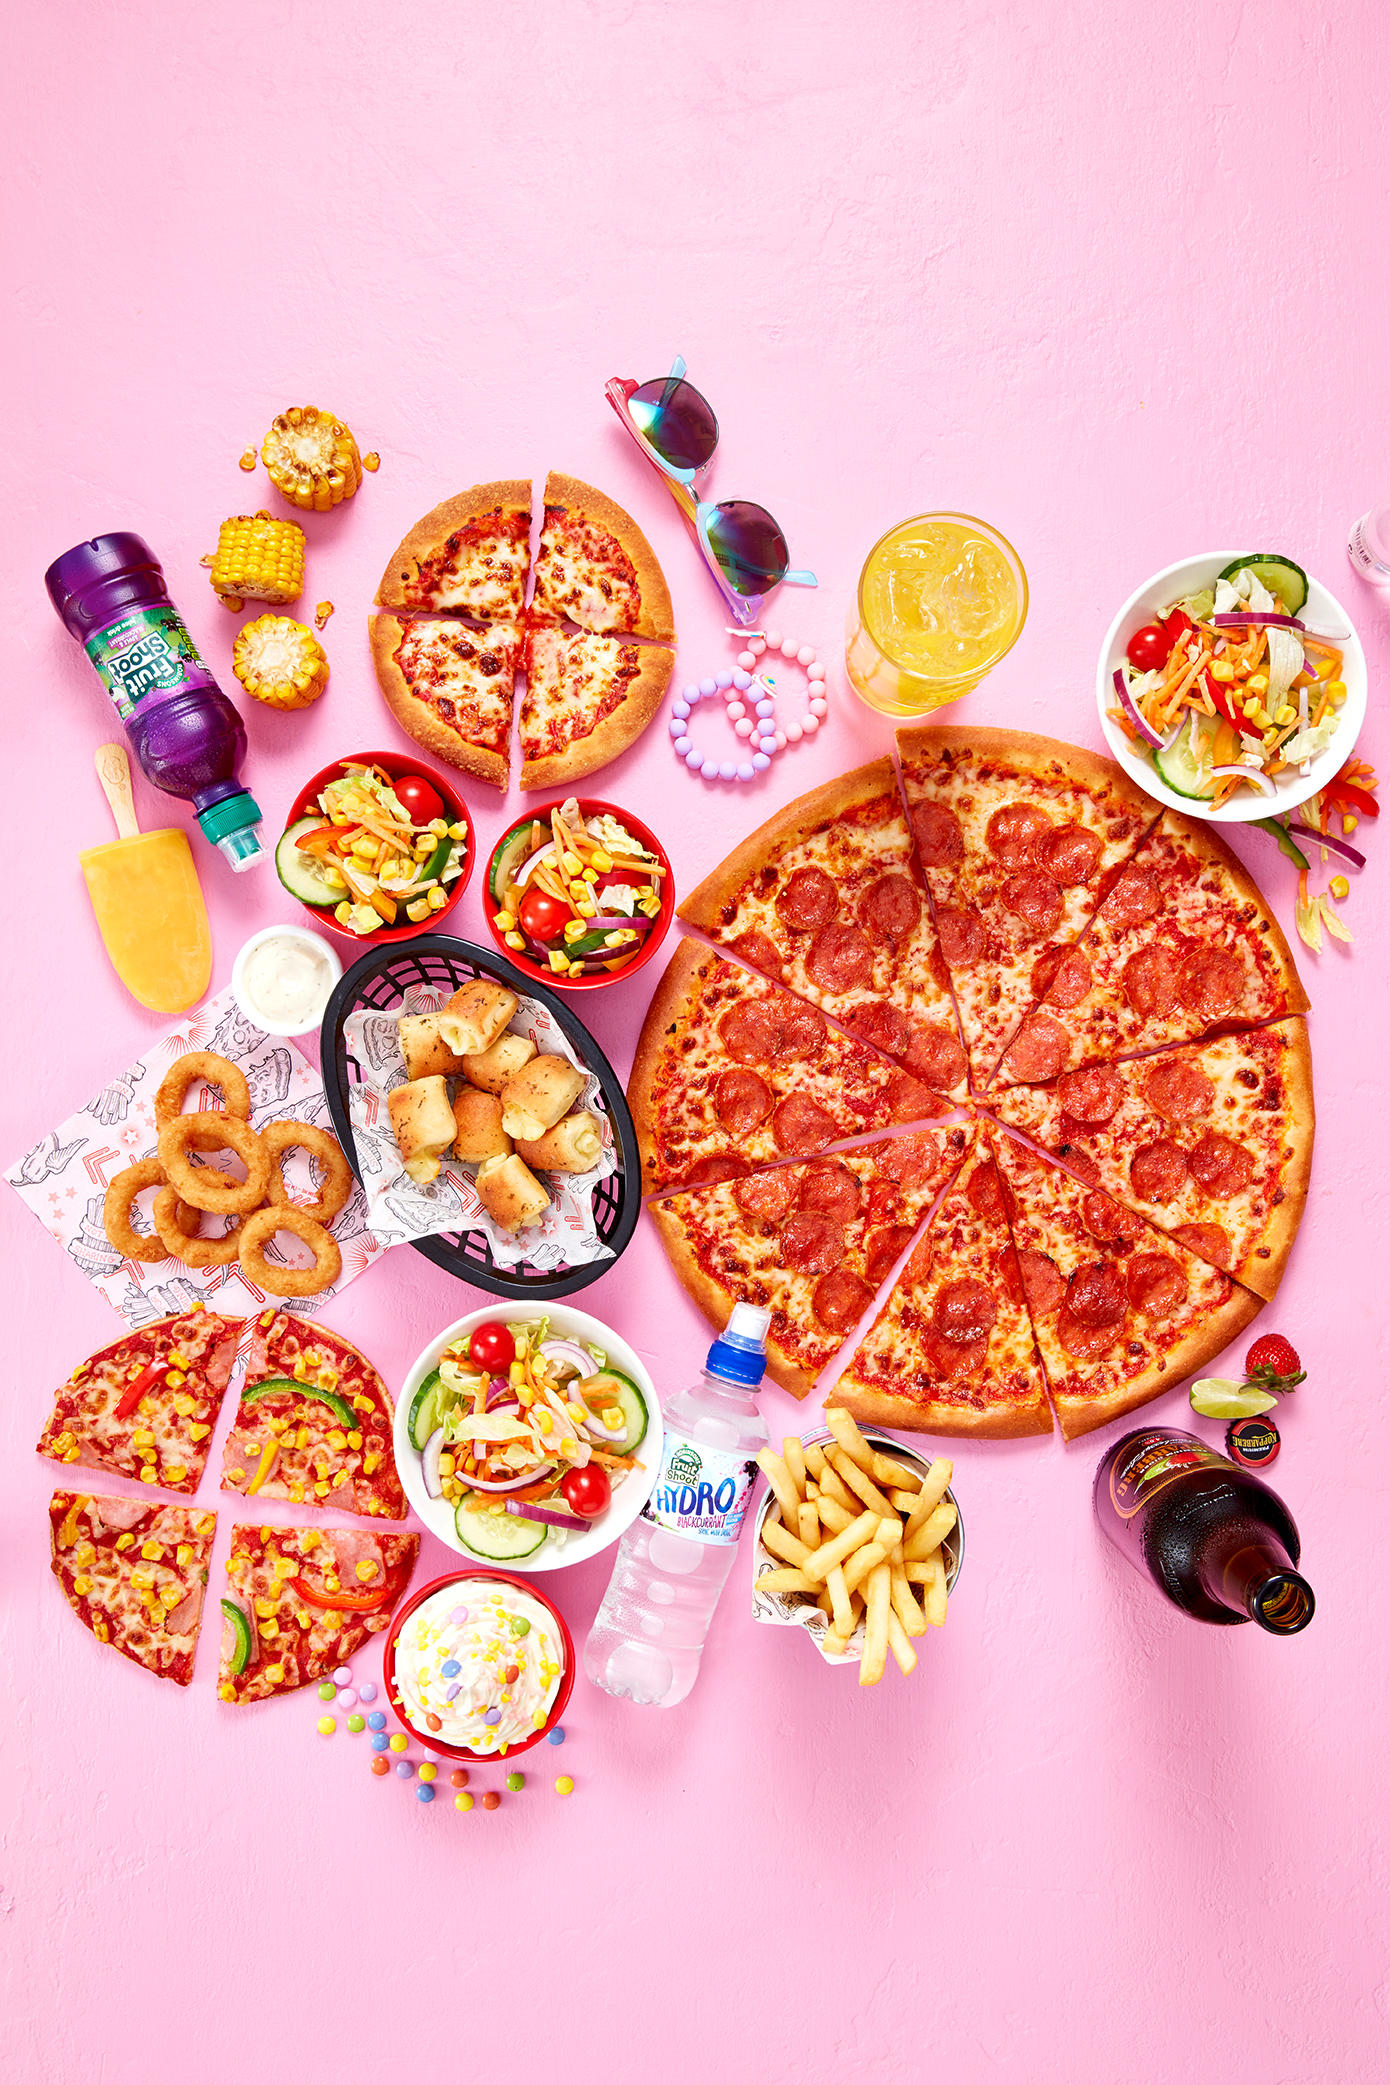 Pizza Hut Restaurants - Feed the entire family for £40 this summer. Pizza Hut Restaurants Glasgow 01236 721122